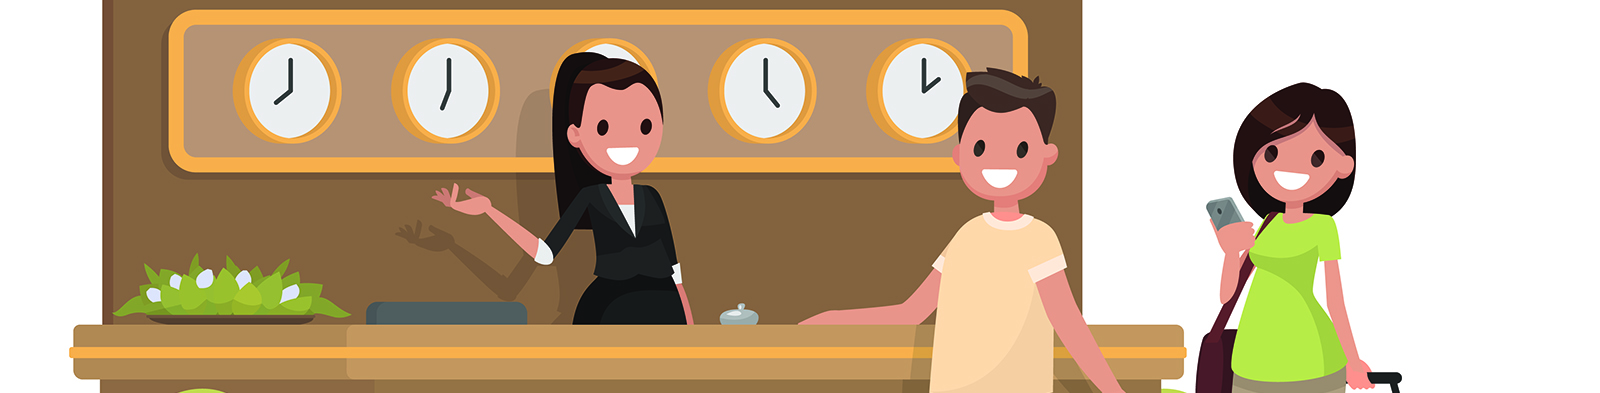 Cartoon of man and a woman checking into hotel